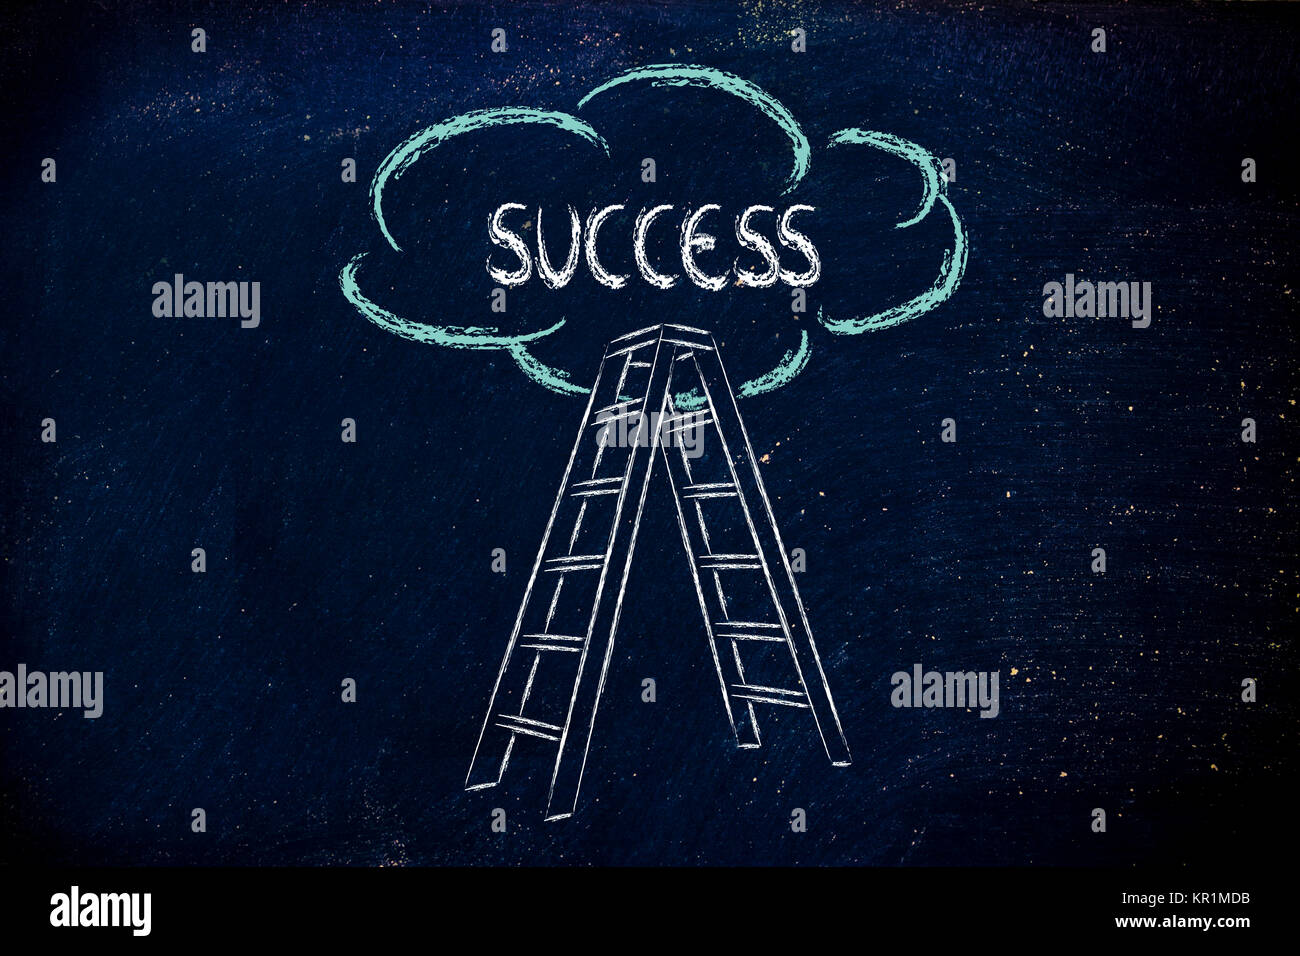 Funny Ladder Of Success Design With Motivational Writing Stock Photo Alamy